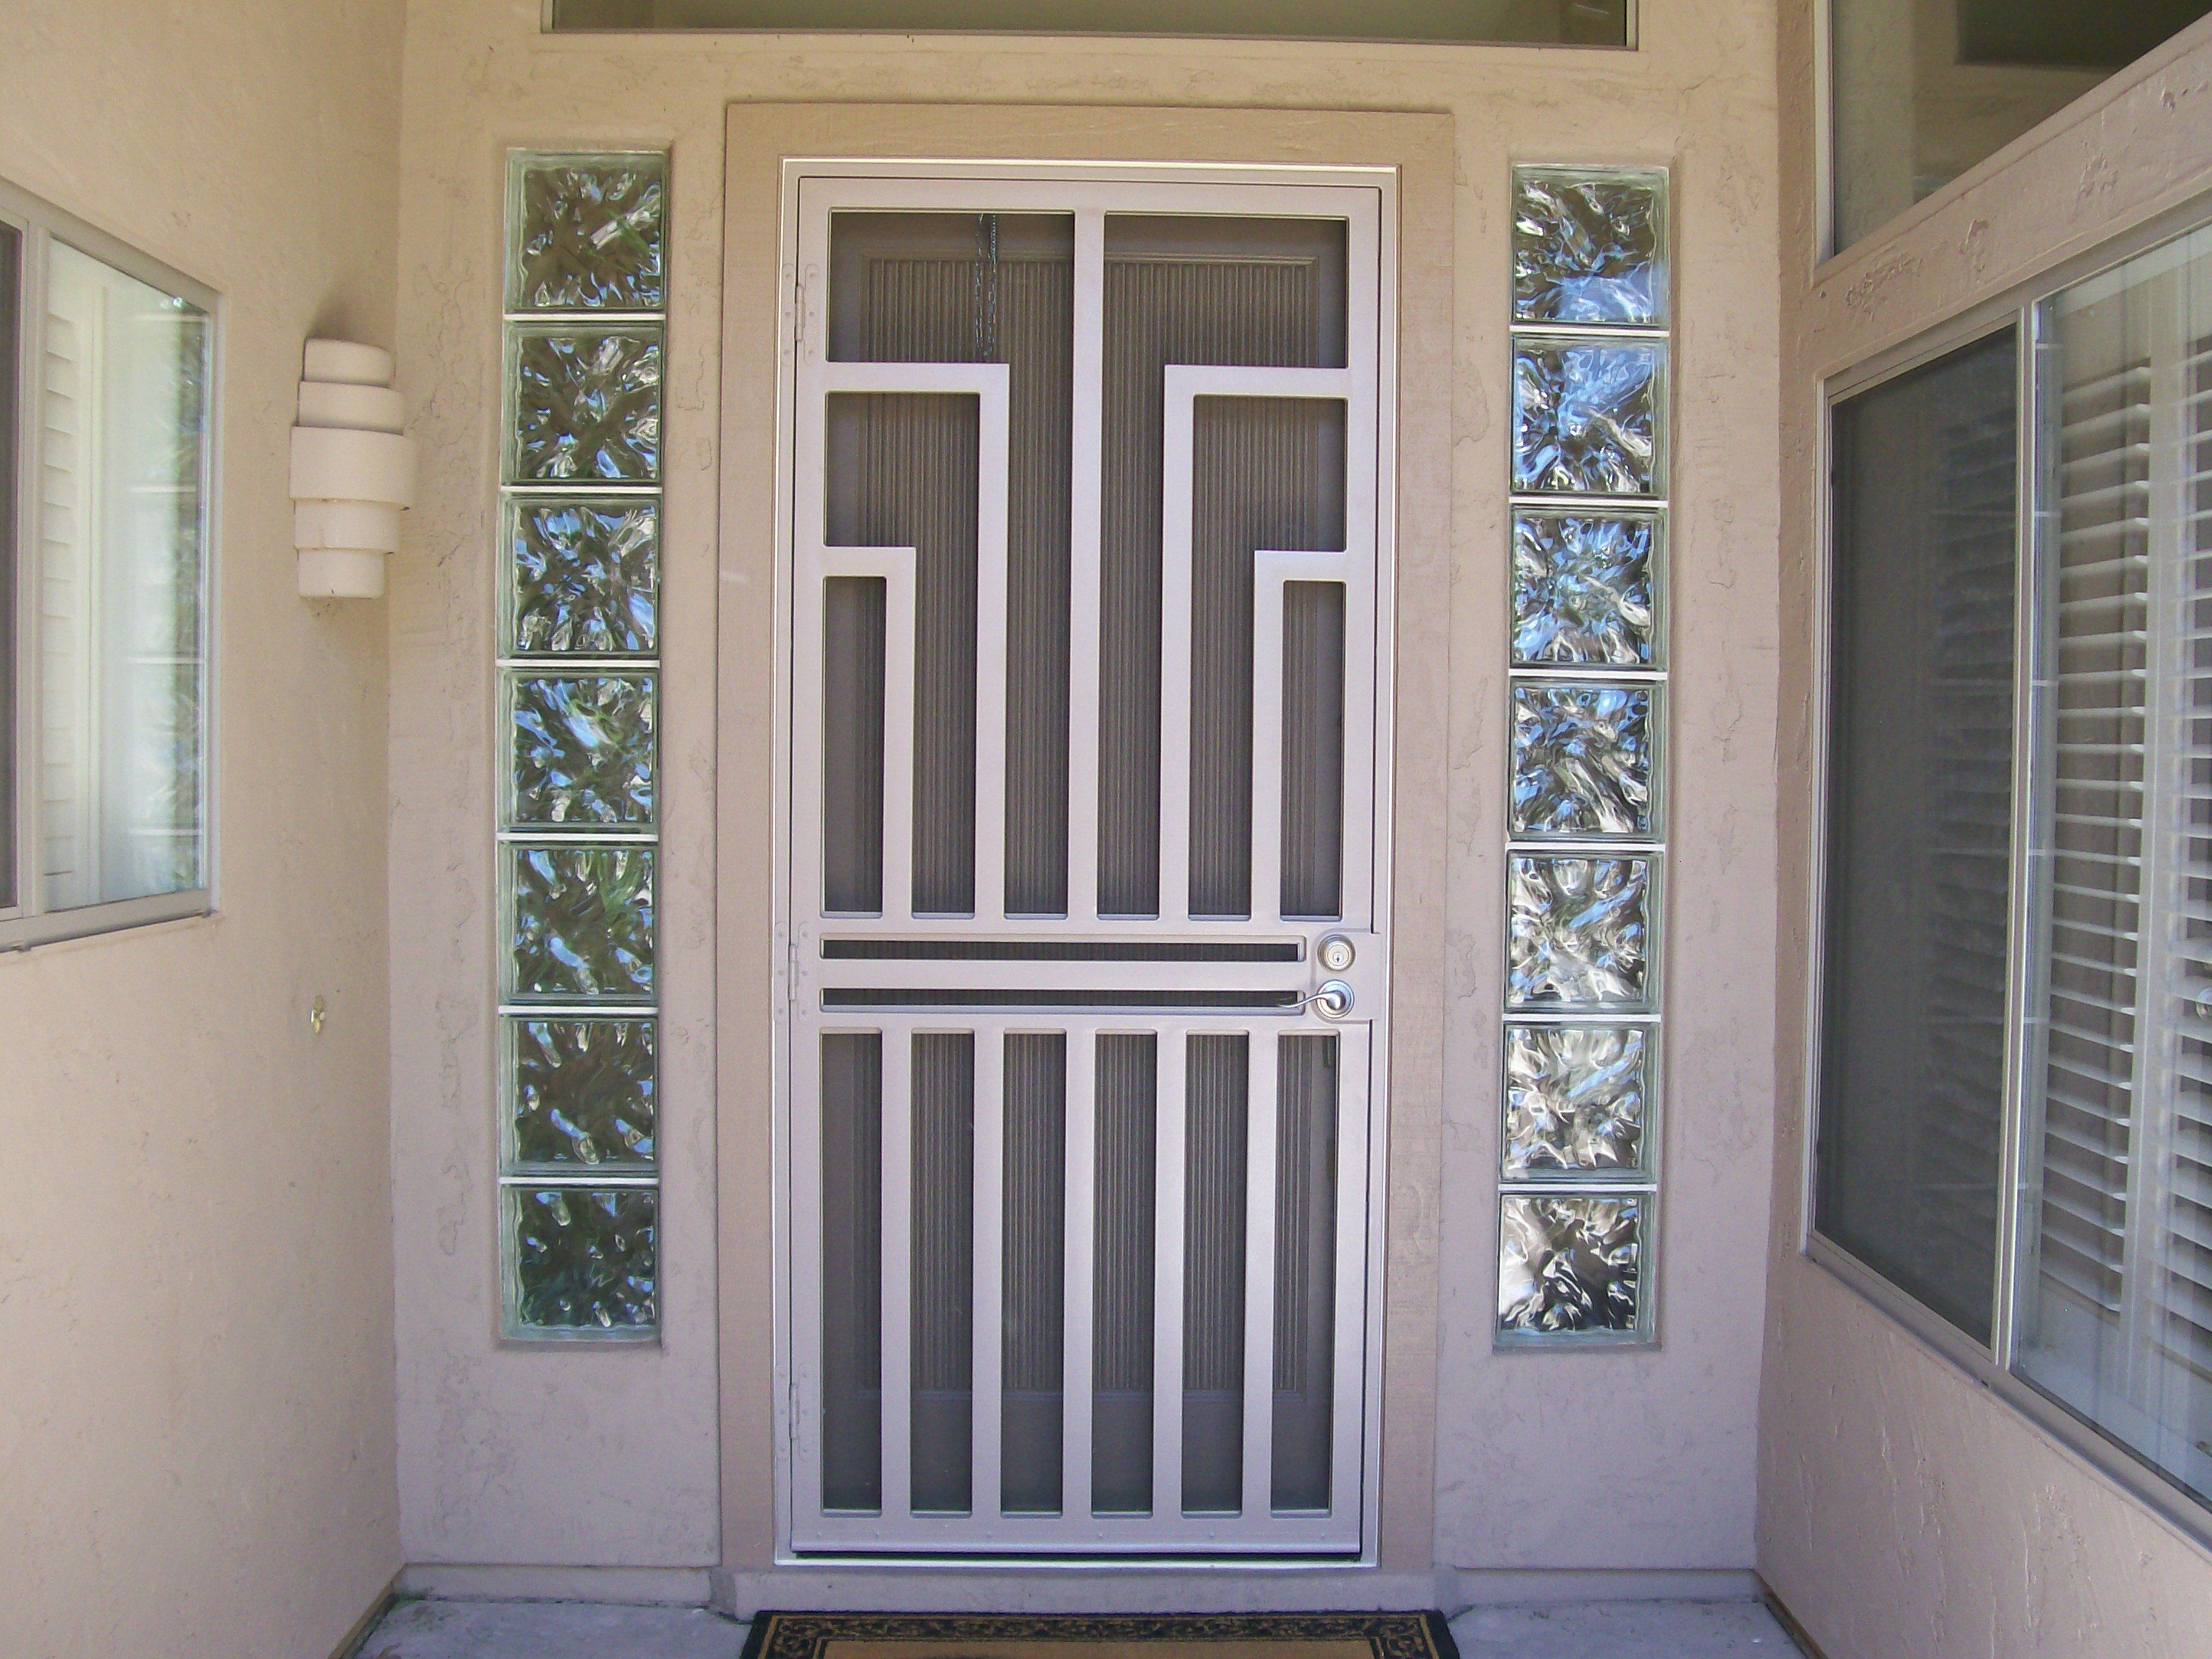 Security screen doors and windows are world class quality for Widows and doors